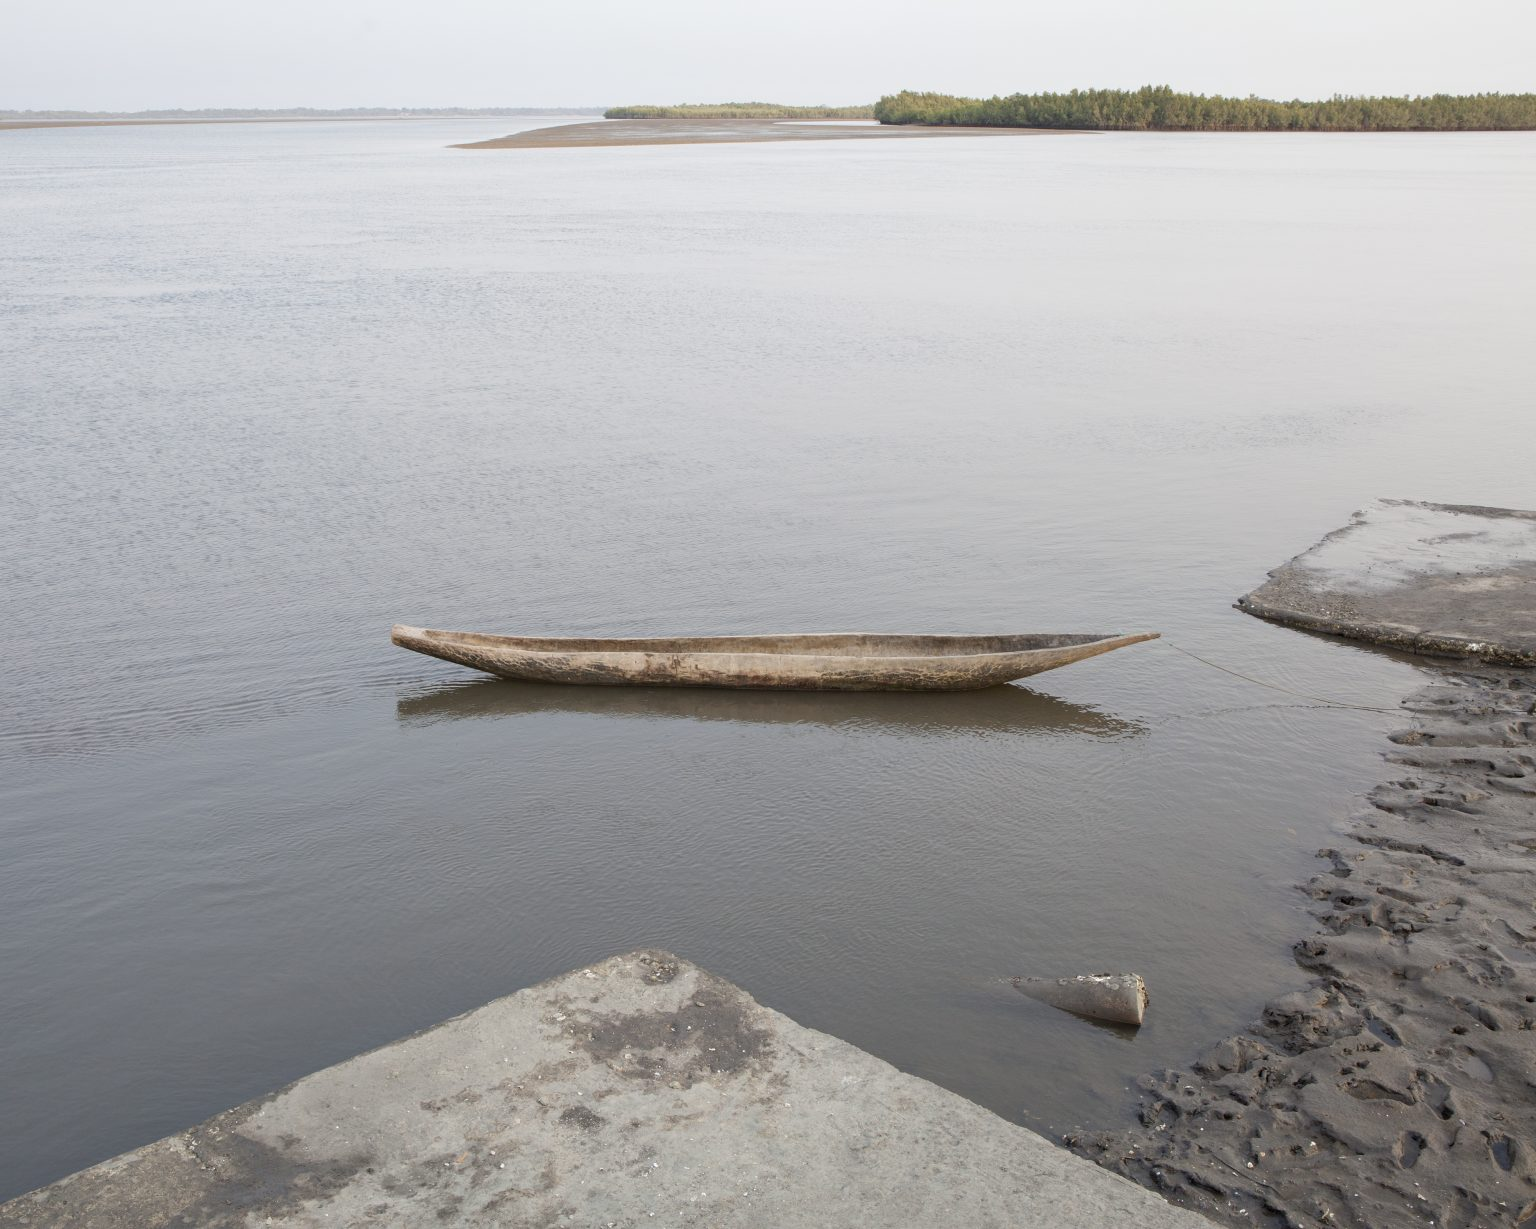 Bonthe town, Sierra Leone, March 2018 - Traditional boat >< Città di Bonthe, Sierra Leone, marzo 2018 - Barca tradizionale